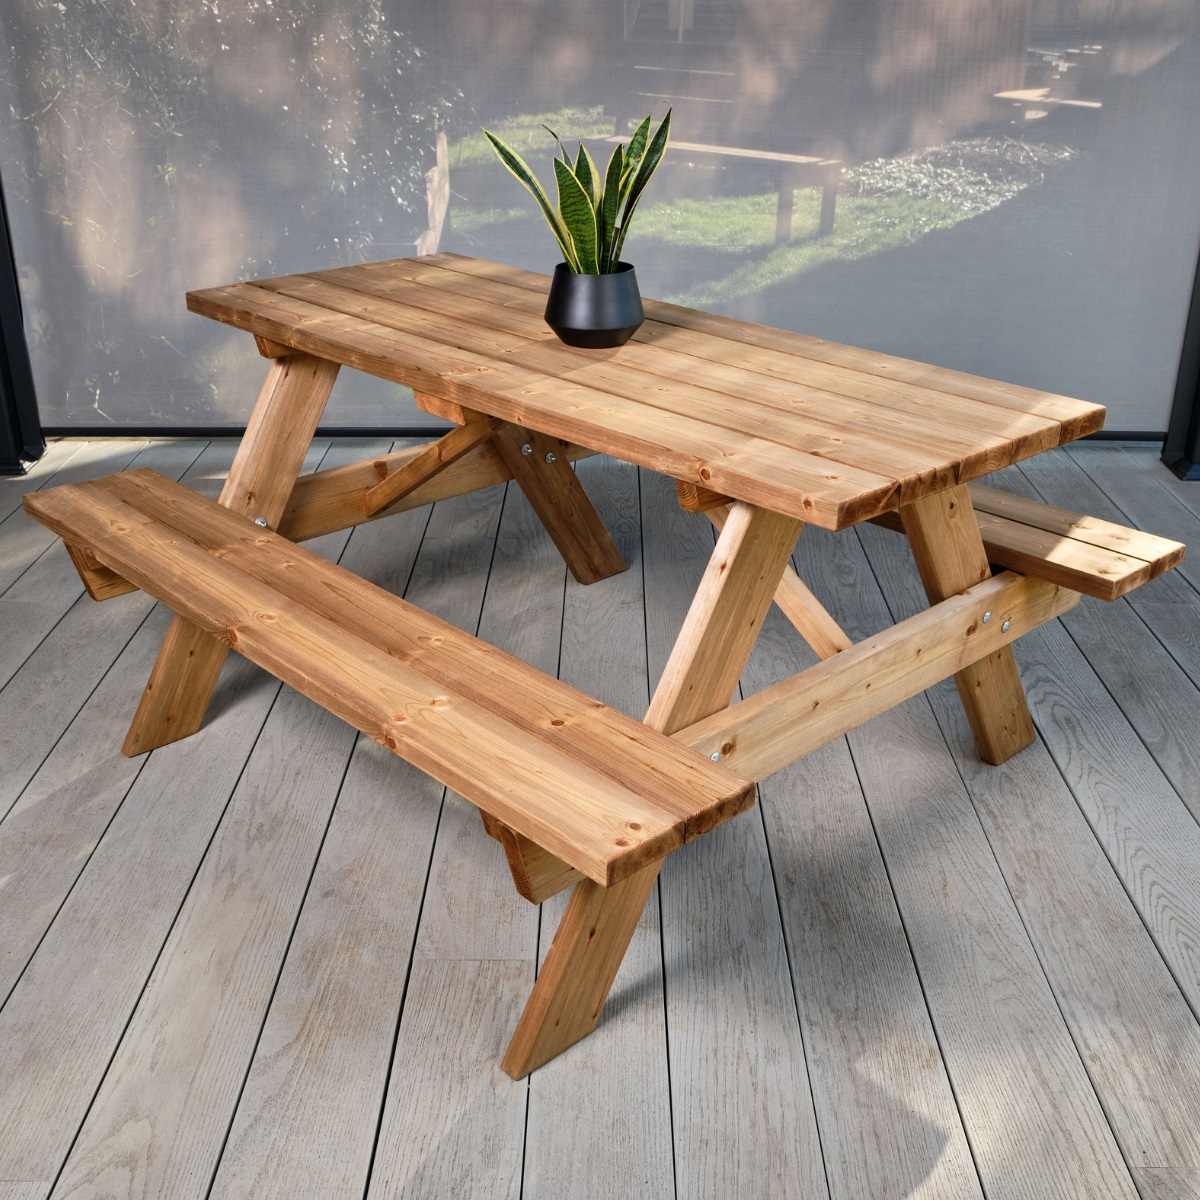 A heavy duty commercial wooden A frame picnic table on a grey deck